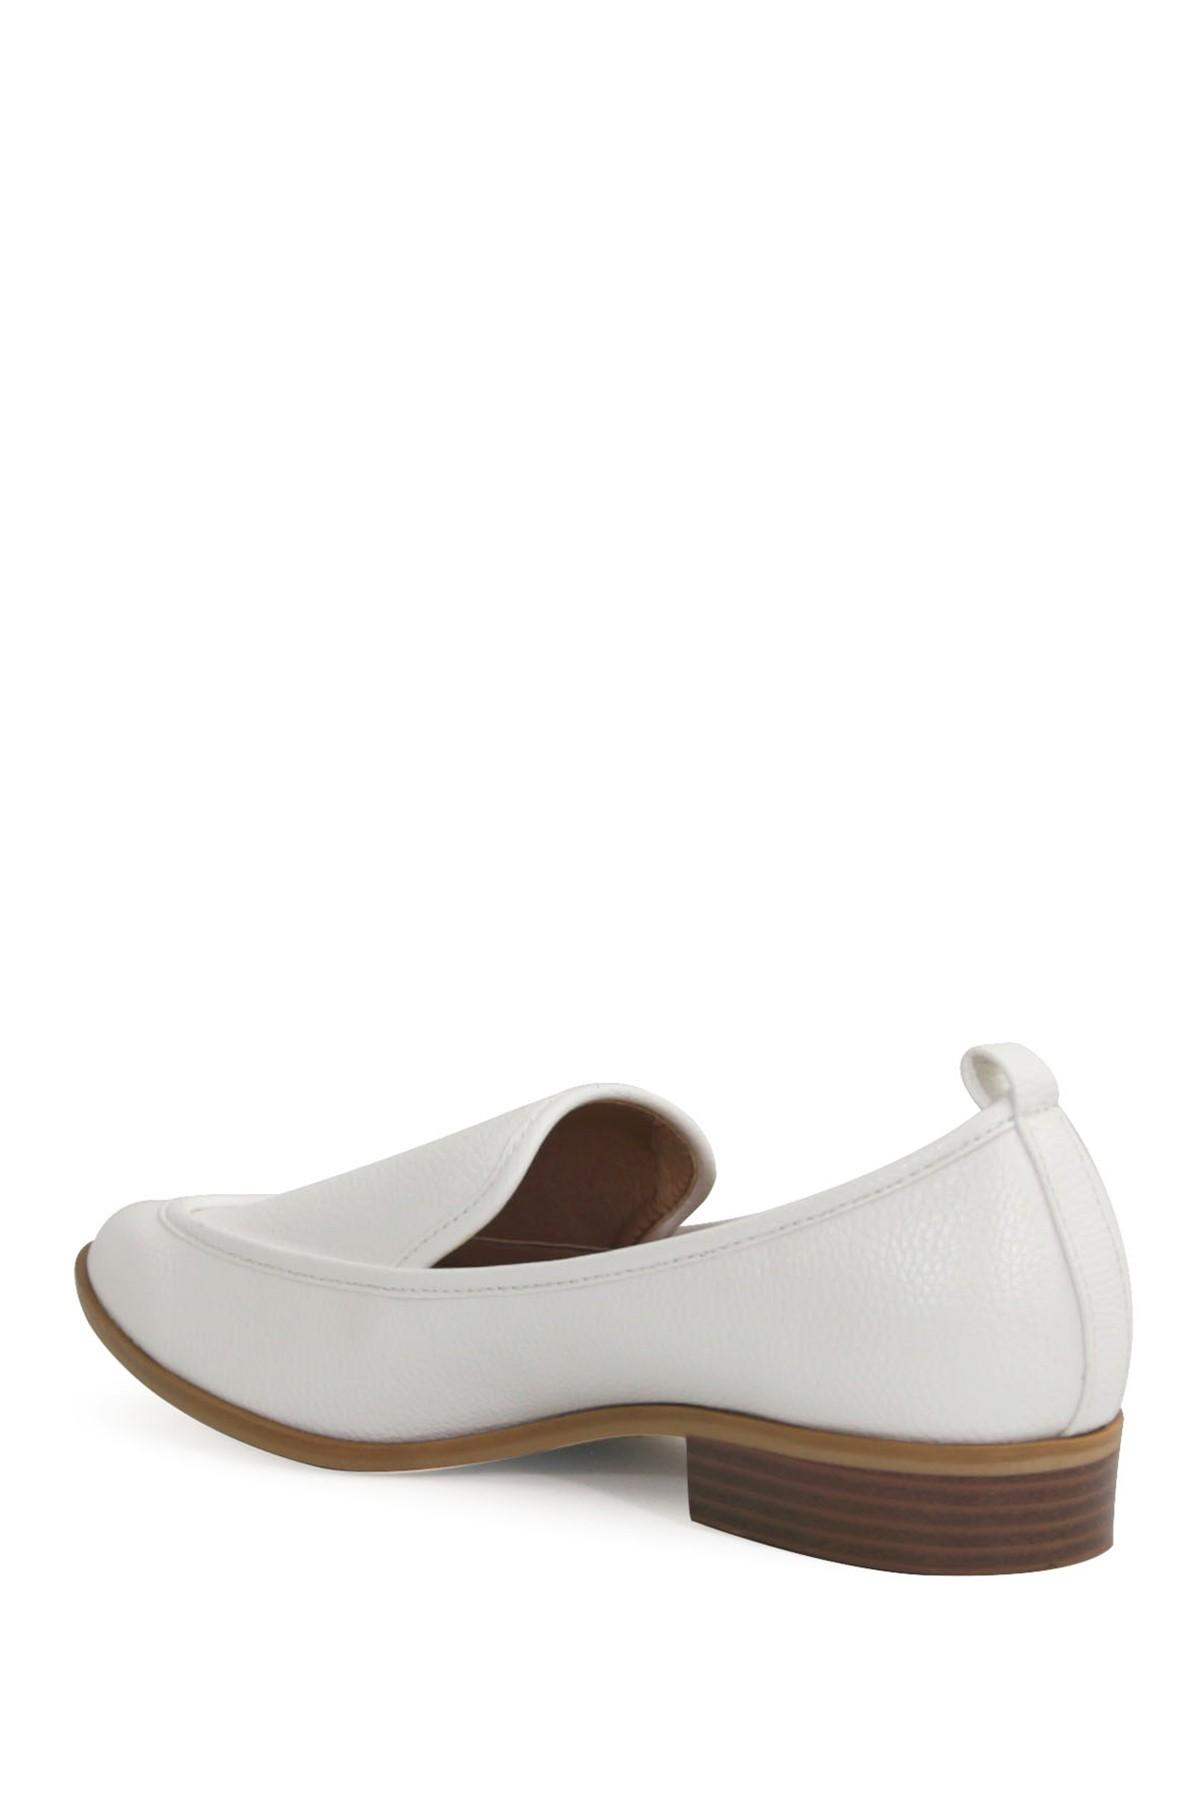 f56e824b9ee Catherine Malandrino - White Westly Low Heel Loafer - Lyst. View fullscreen